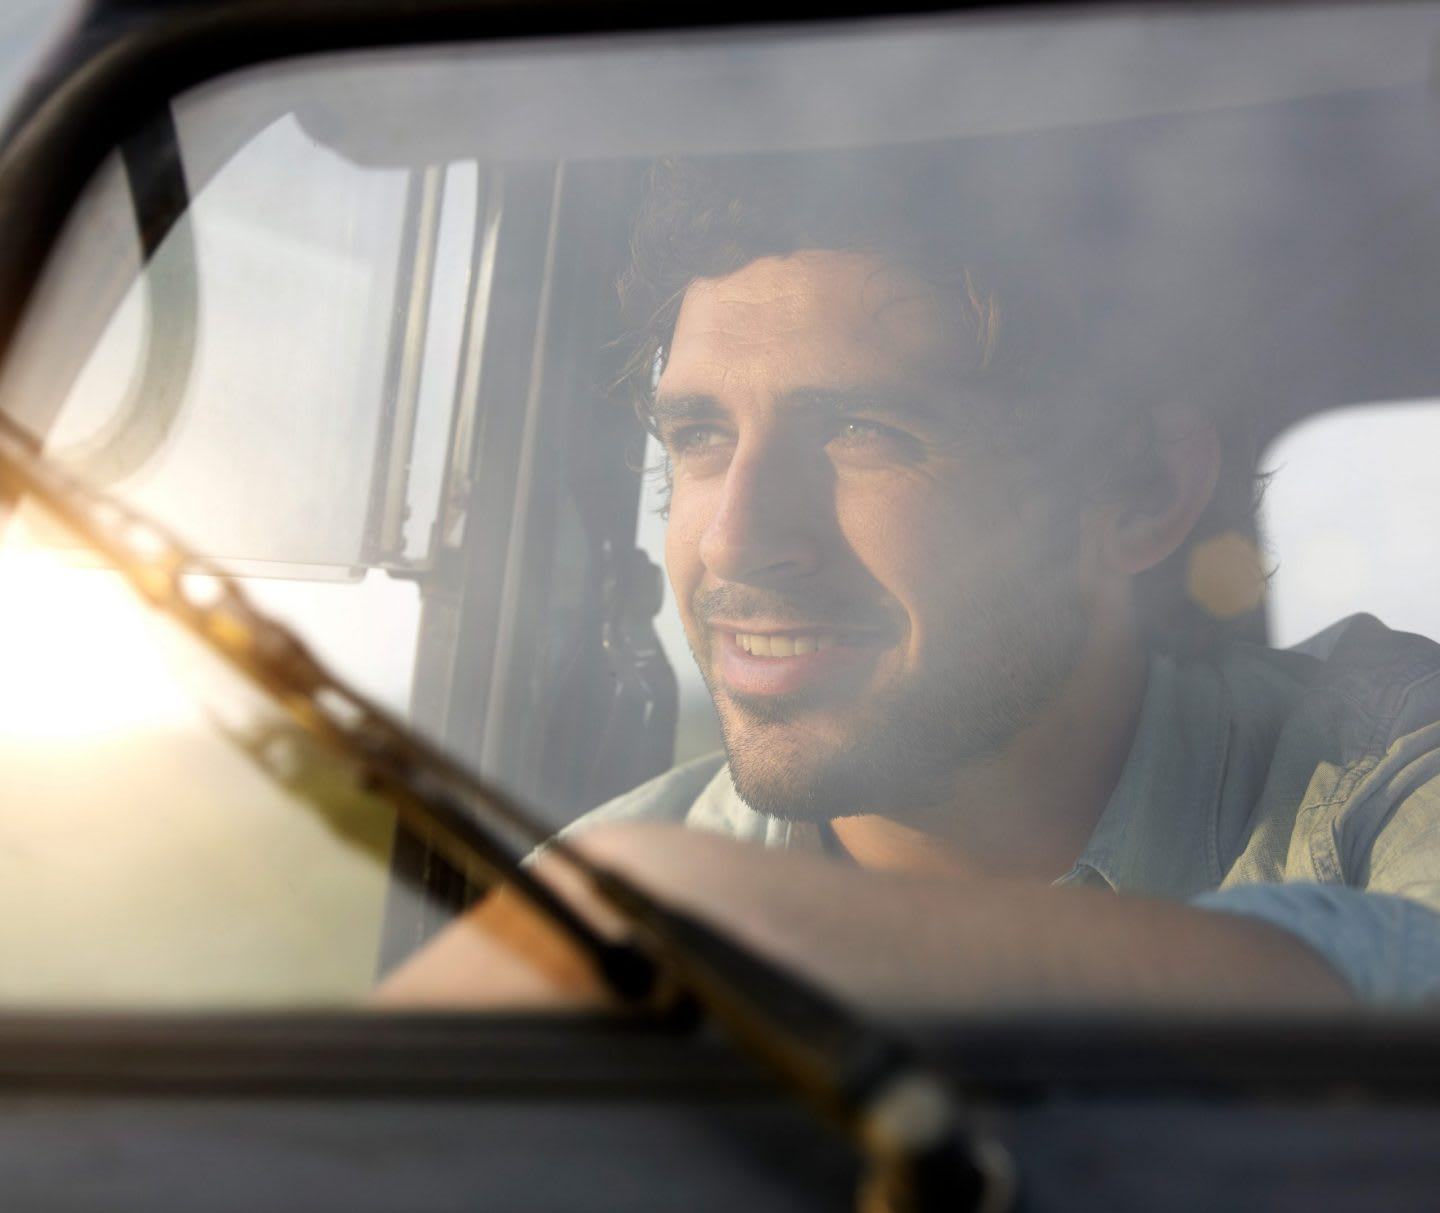 Picture of man smiling while driving through windshield, man, smiling, drive, car